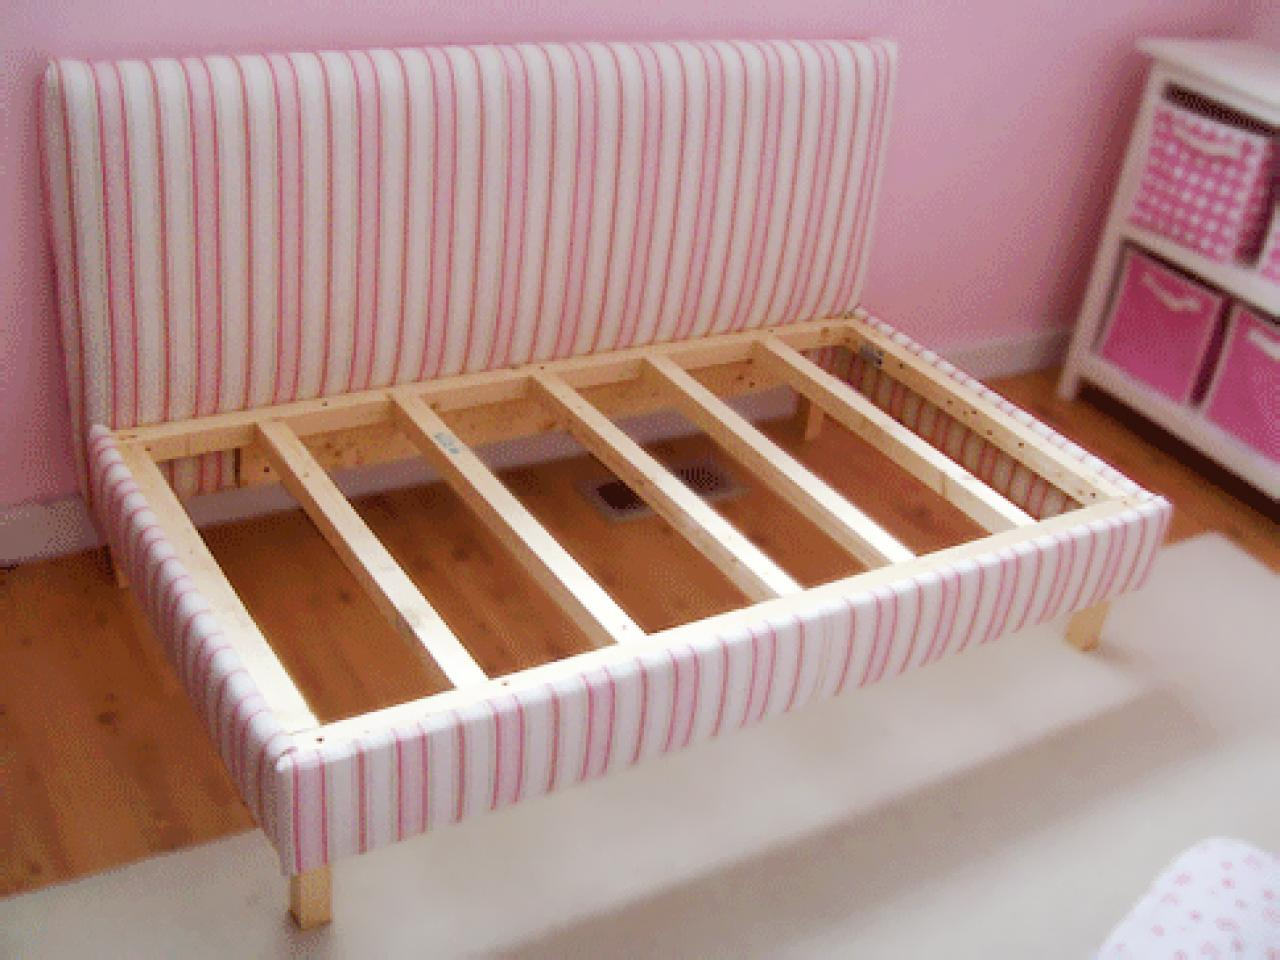 Daybed frame plans - Daybed Cost Around 50 75 To Make Full Plan Lily Seems To Sleep On Her Bed Sideways This Might Be Perfect For Her Funny Shtuff Pinterest